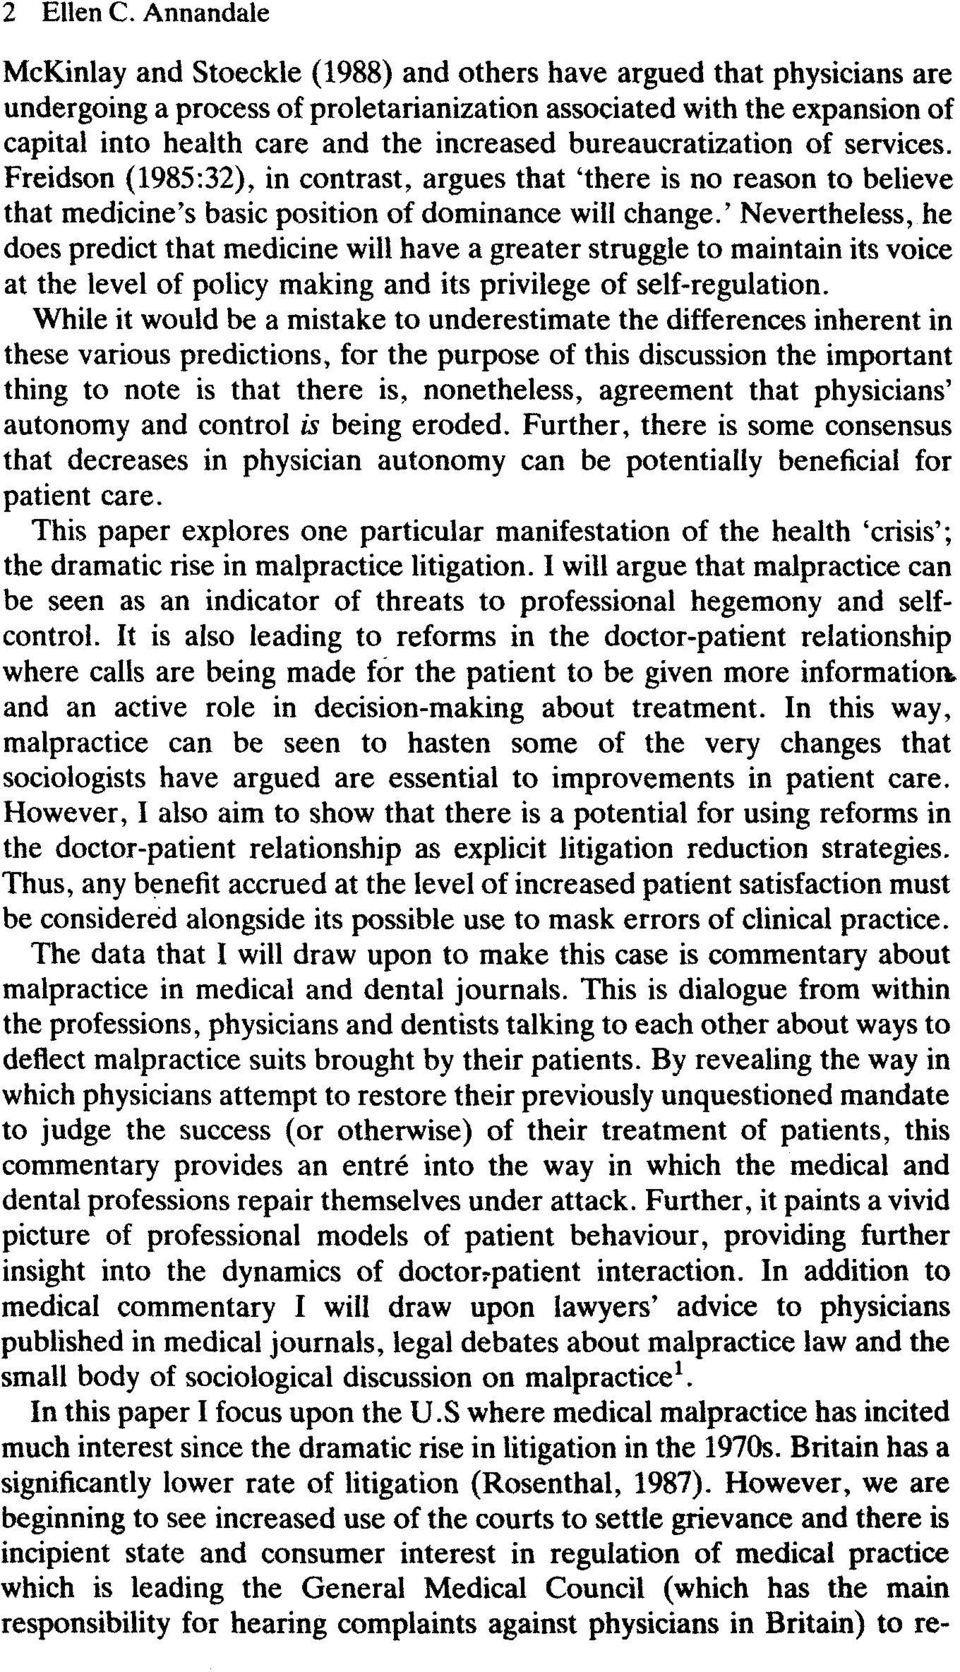 increased bureaucratization of services. Freidson (1985:32), in contrast, argues that 'there is no reason to beheve that medicine's basic position of dominance will change.